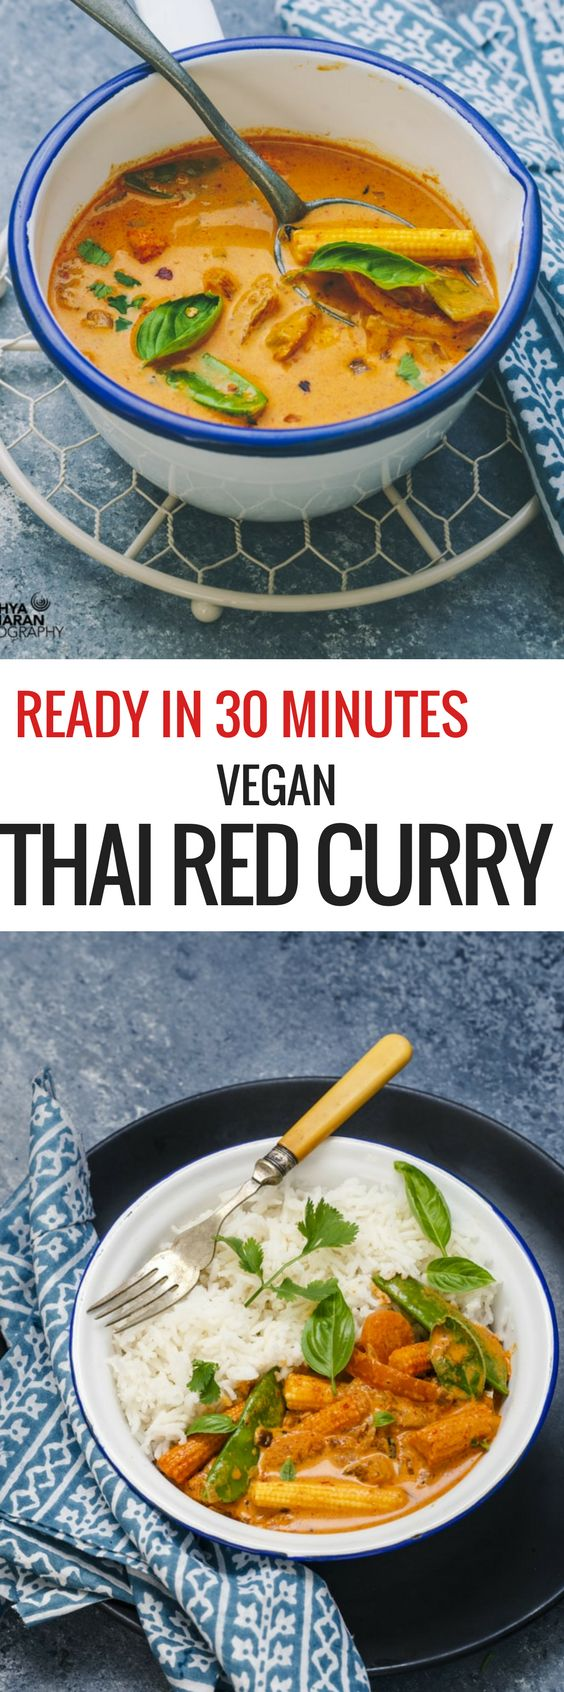 30 MINUTES VEGAN THAI RED CURRY ! #vegan #thai #redcurry #curry